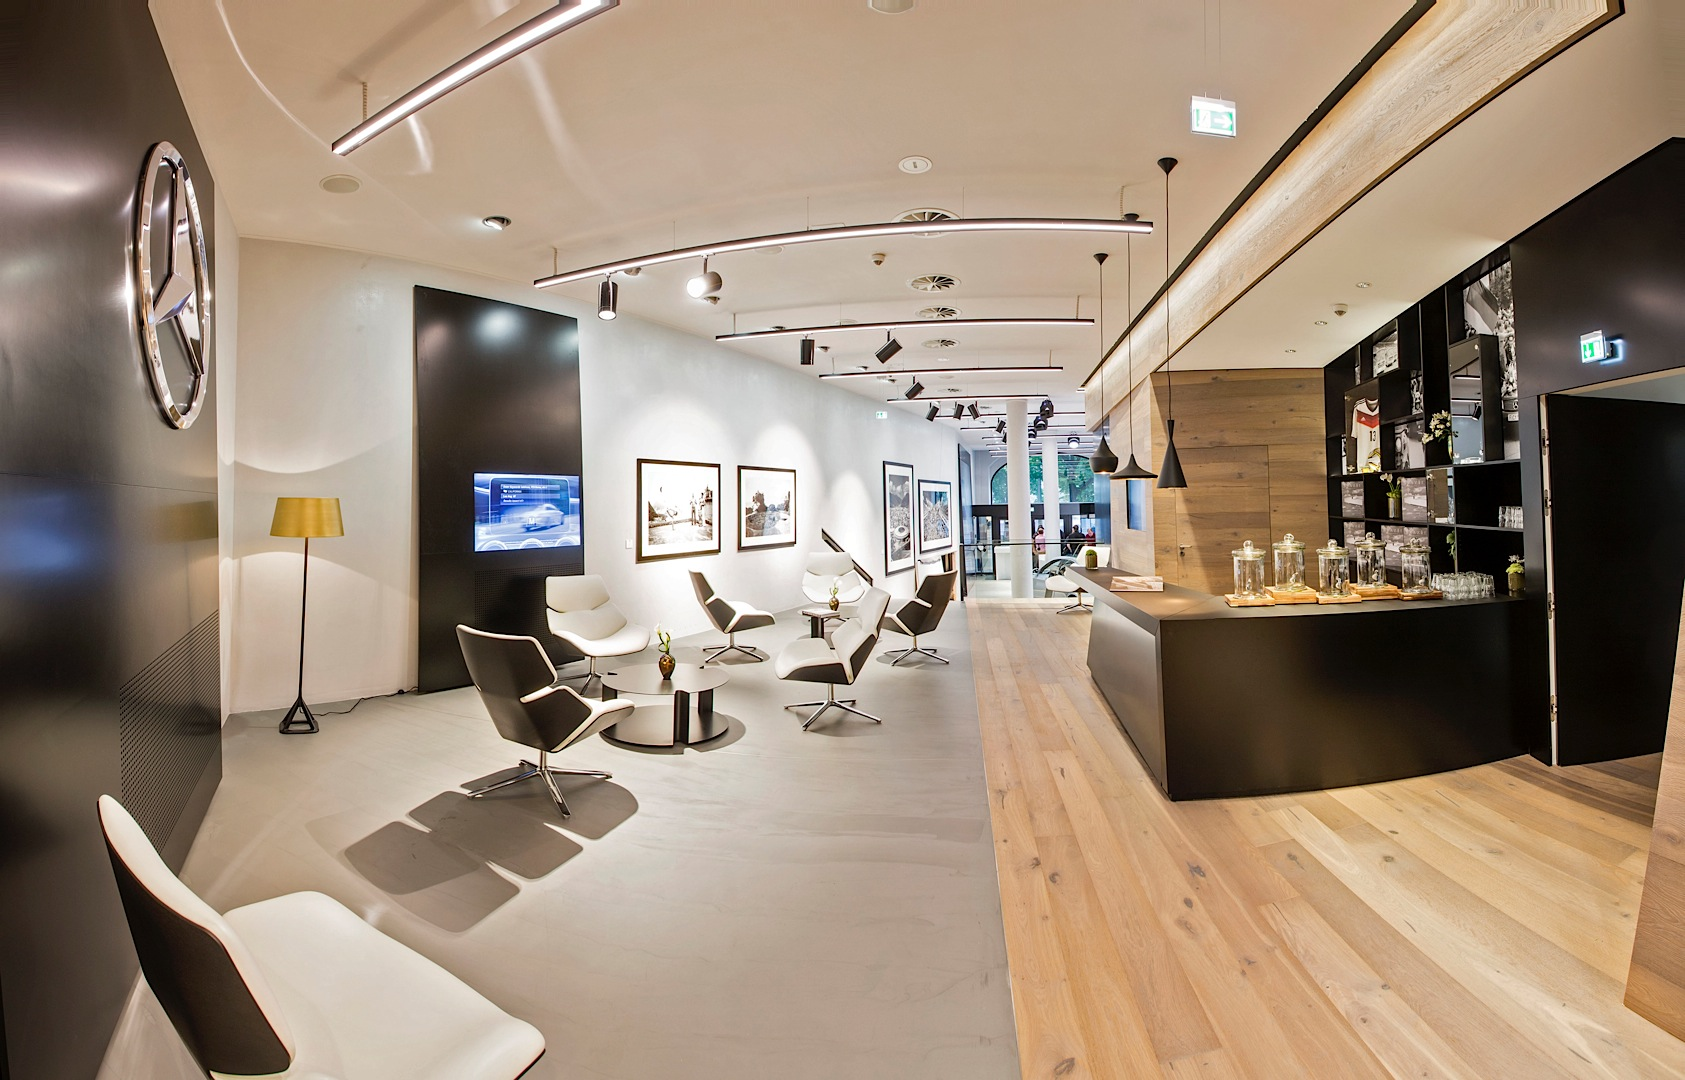 Mercedes Benz Logo >> First Innovative Mercedes me Store Opens in Germany - autoevolution